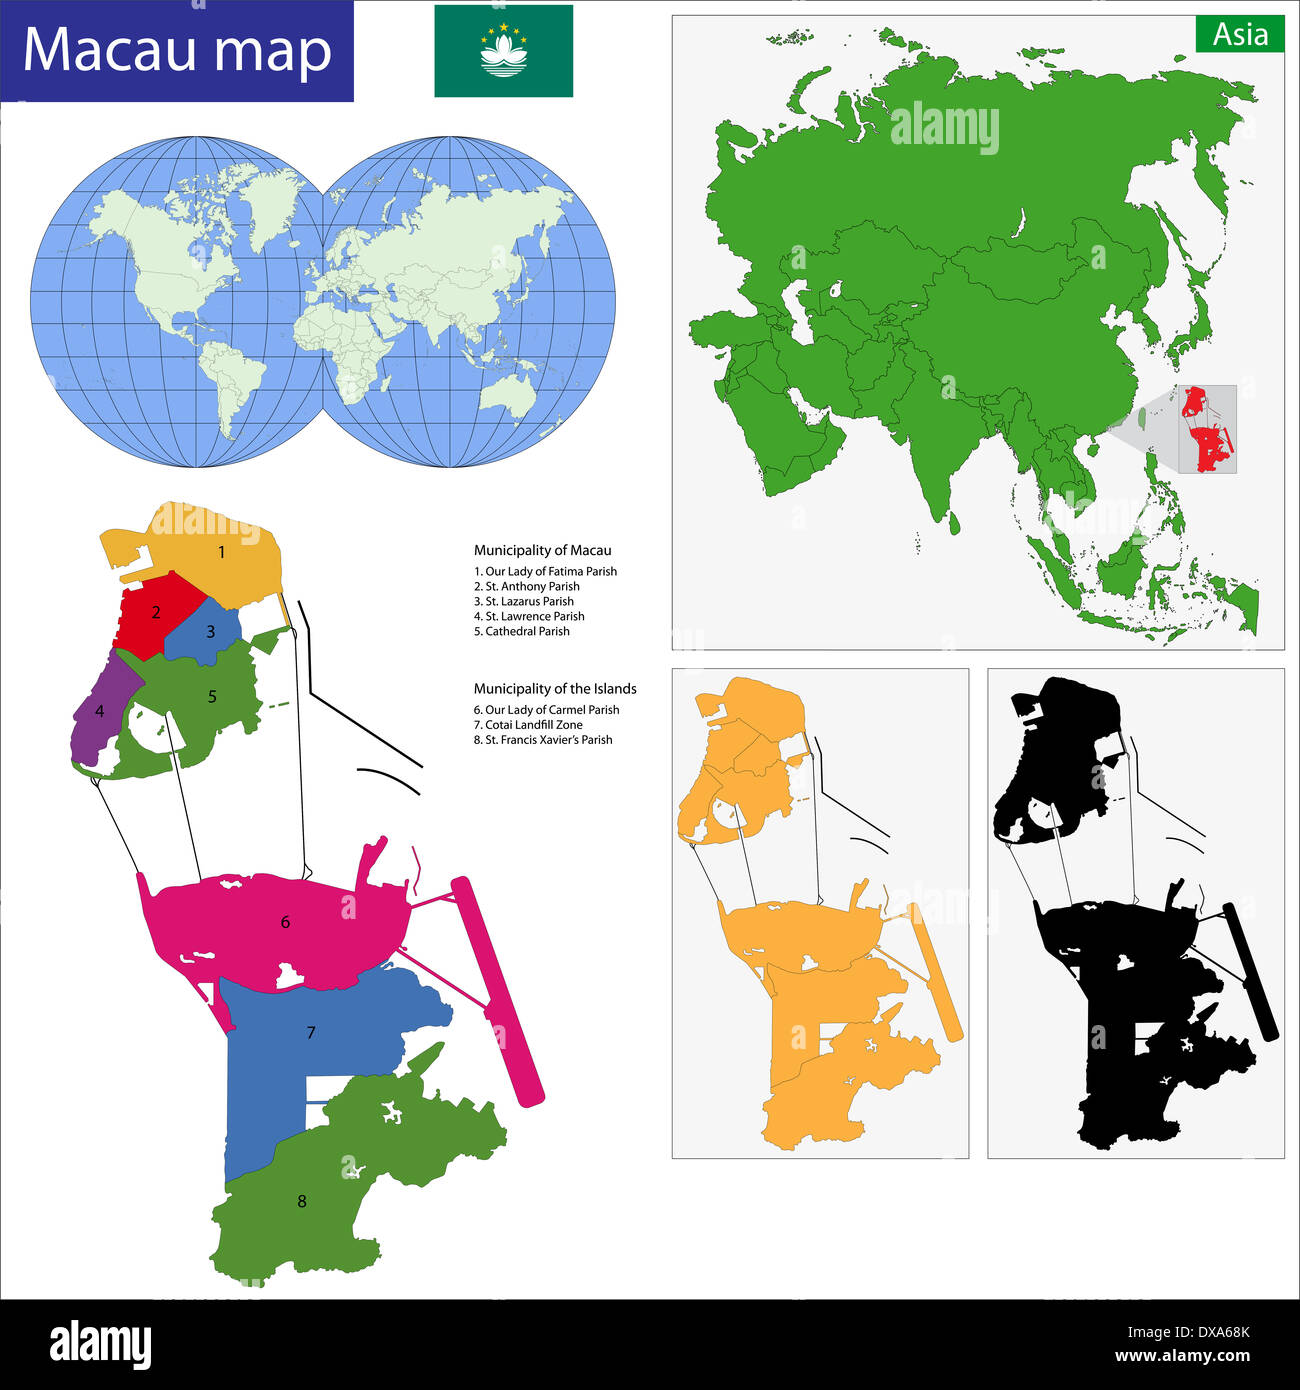 Macao map Stock Photo: 67836627 - Alamy on map of sao tome principe, map of hong kong, map of cantonese, map of nanjing university, map of mongolia, map of french equatorial africa, map china, map of bissau, map of hankou, map of scotland, map of sulaymaniyah, map of no. africa, map of ormuz, map of brunei, map of asia, map of cotai, map of malawi, map of democratic kampuchea, map of jinzhou, map of united arab of emirates,